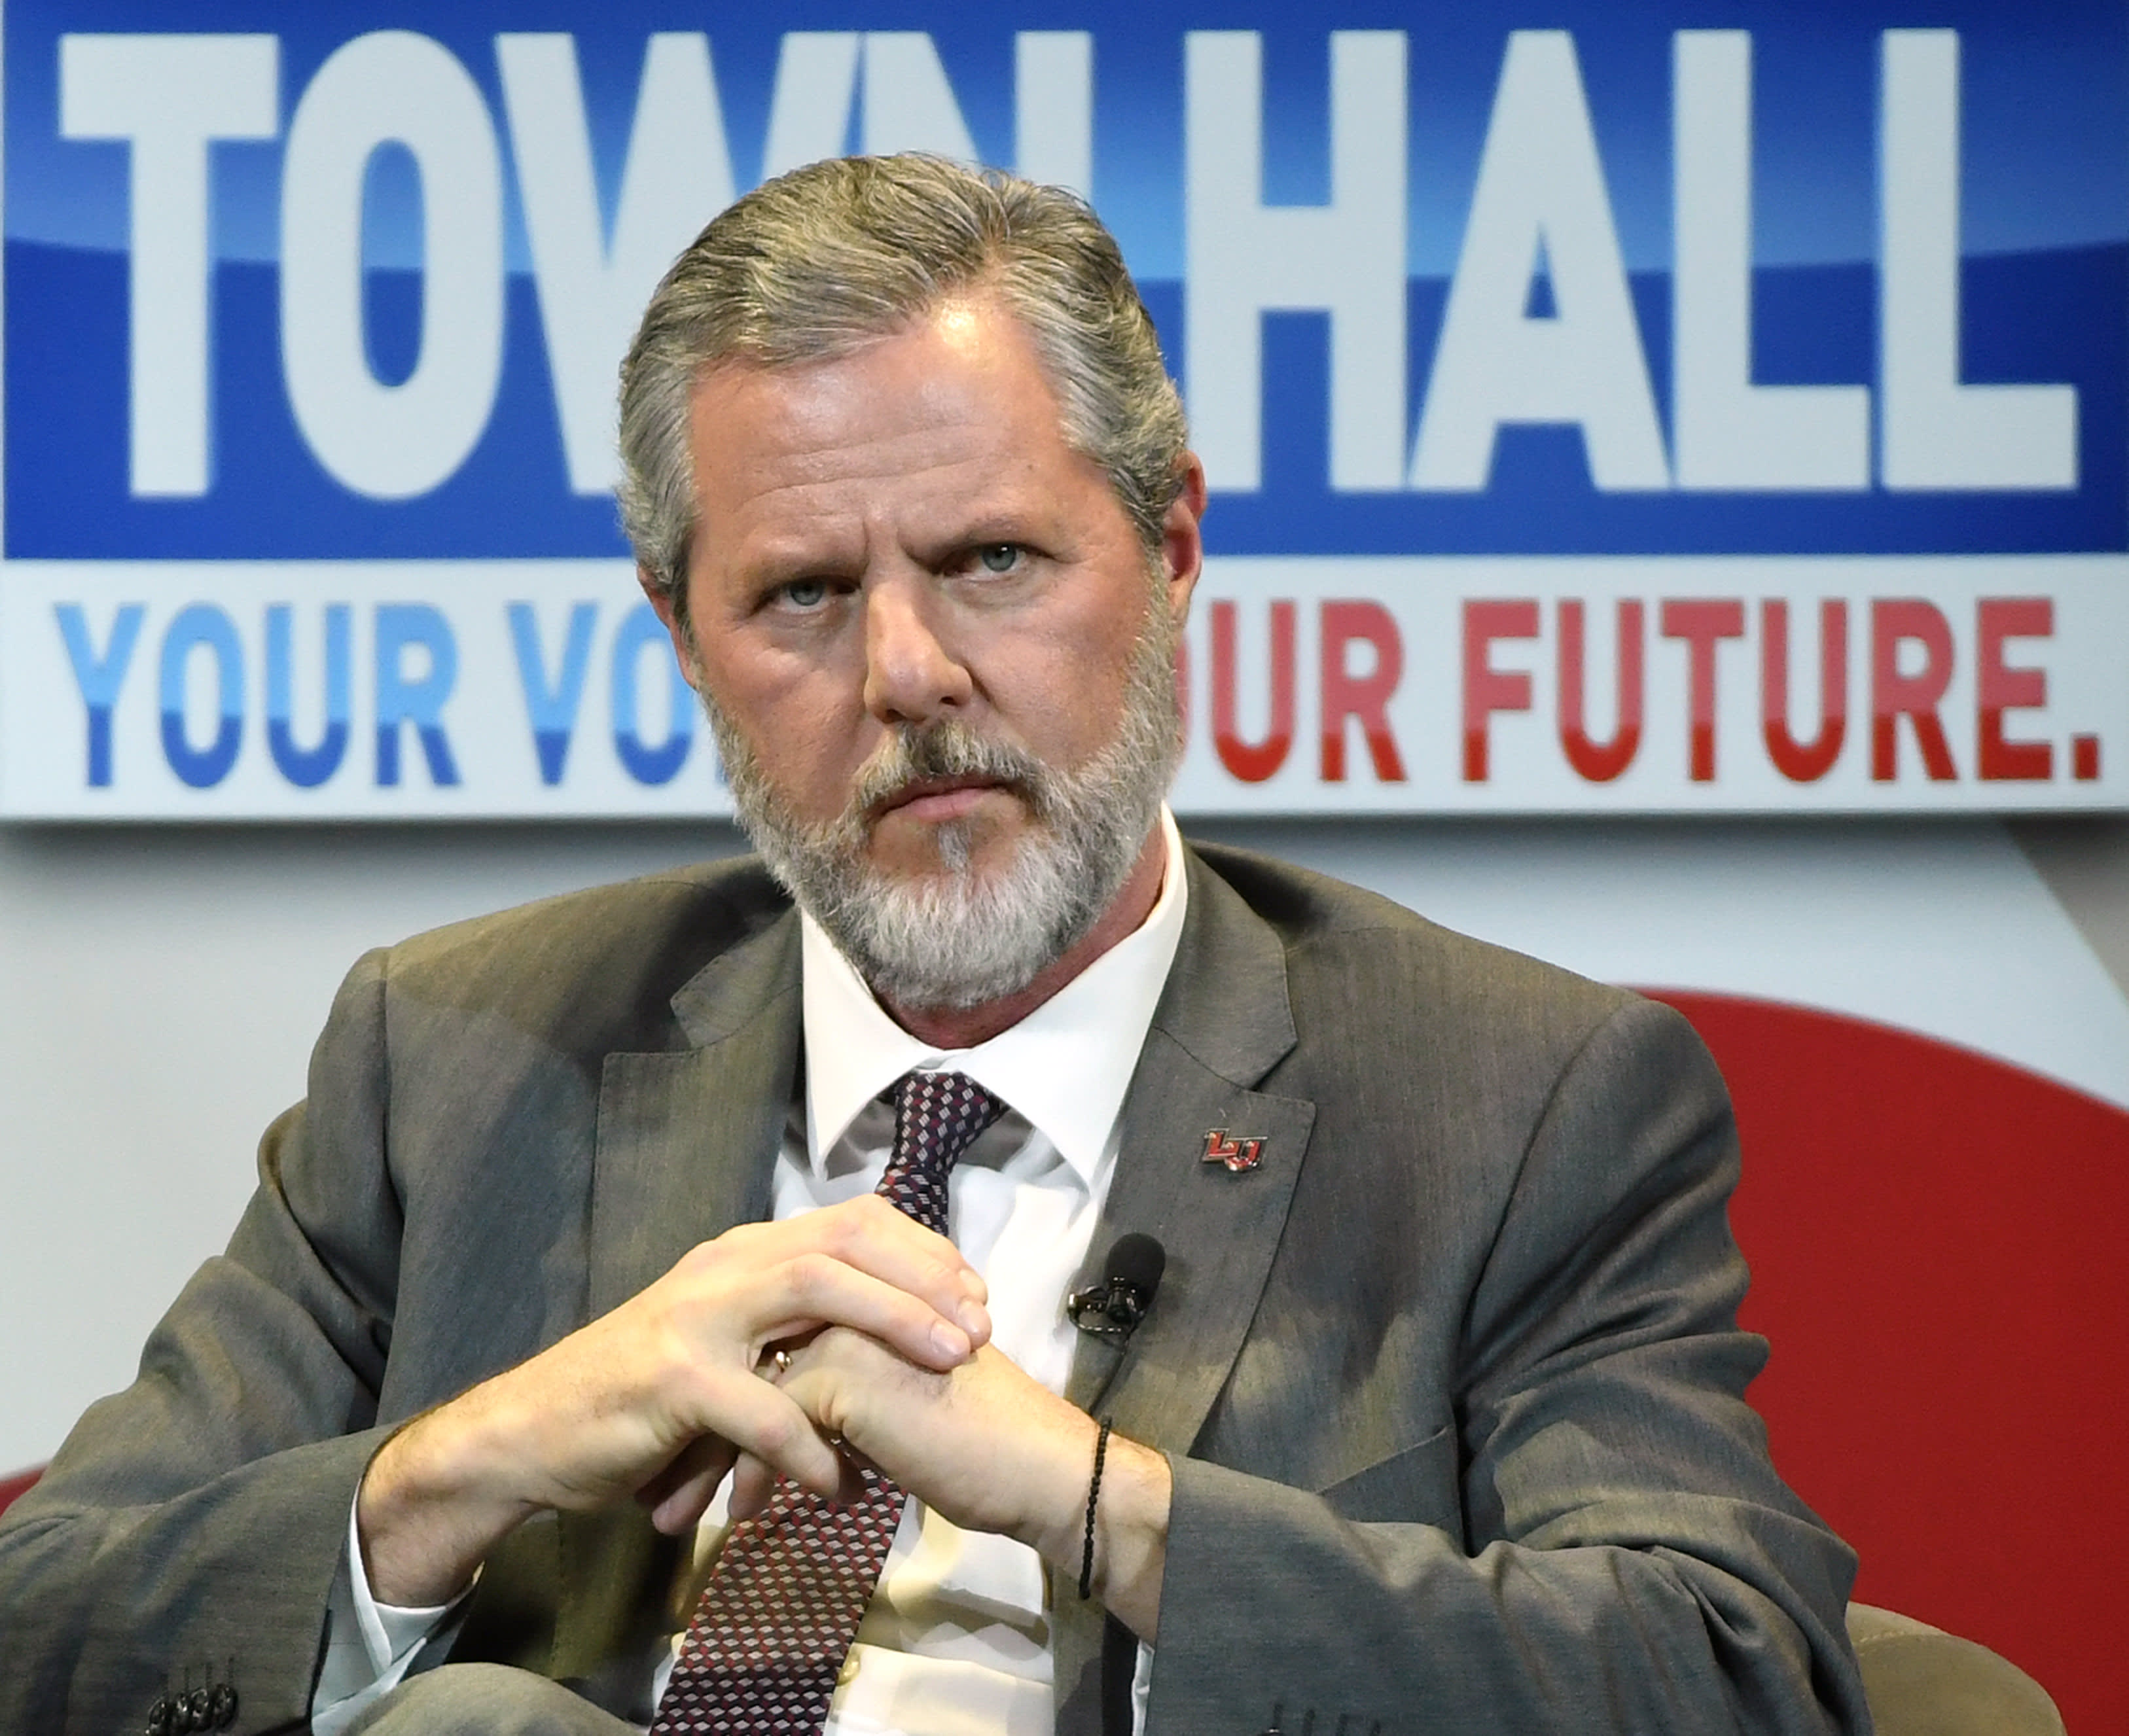 Jerry Falwell Jr. takes indefinite leave of absence from Liberty University